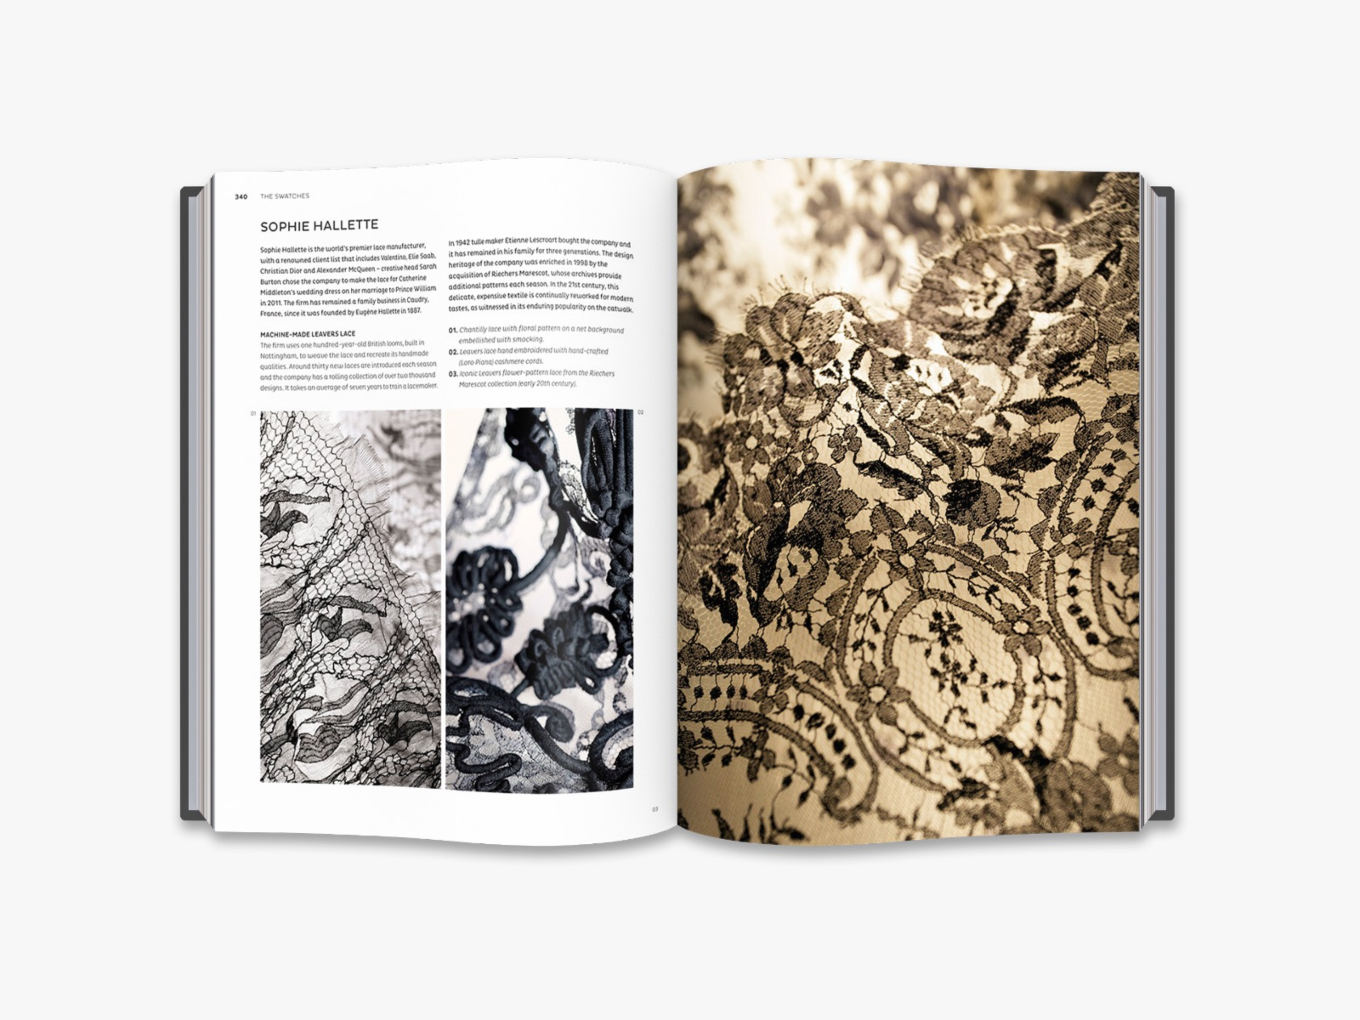 fashion design books for fashion students the best design books She has wide experience of interviewing contemporary designers and is the  best-selling author of, among other books, Fashion Design Directory and  Fashion: ...